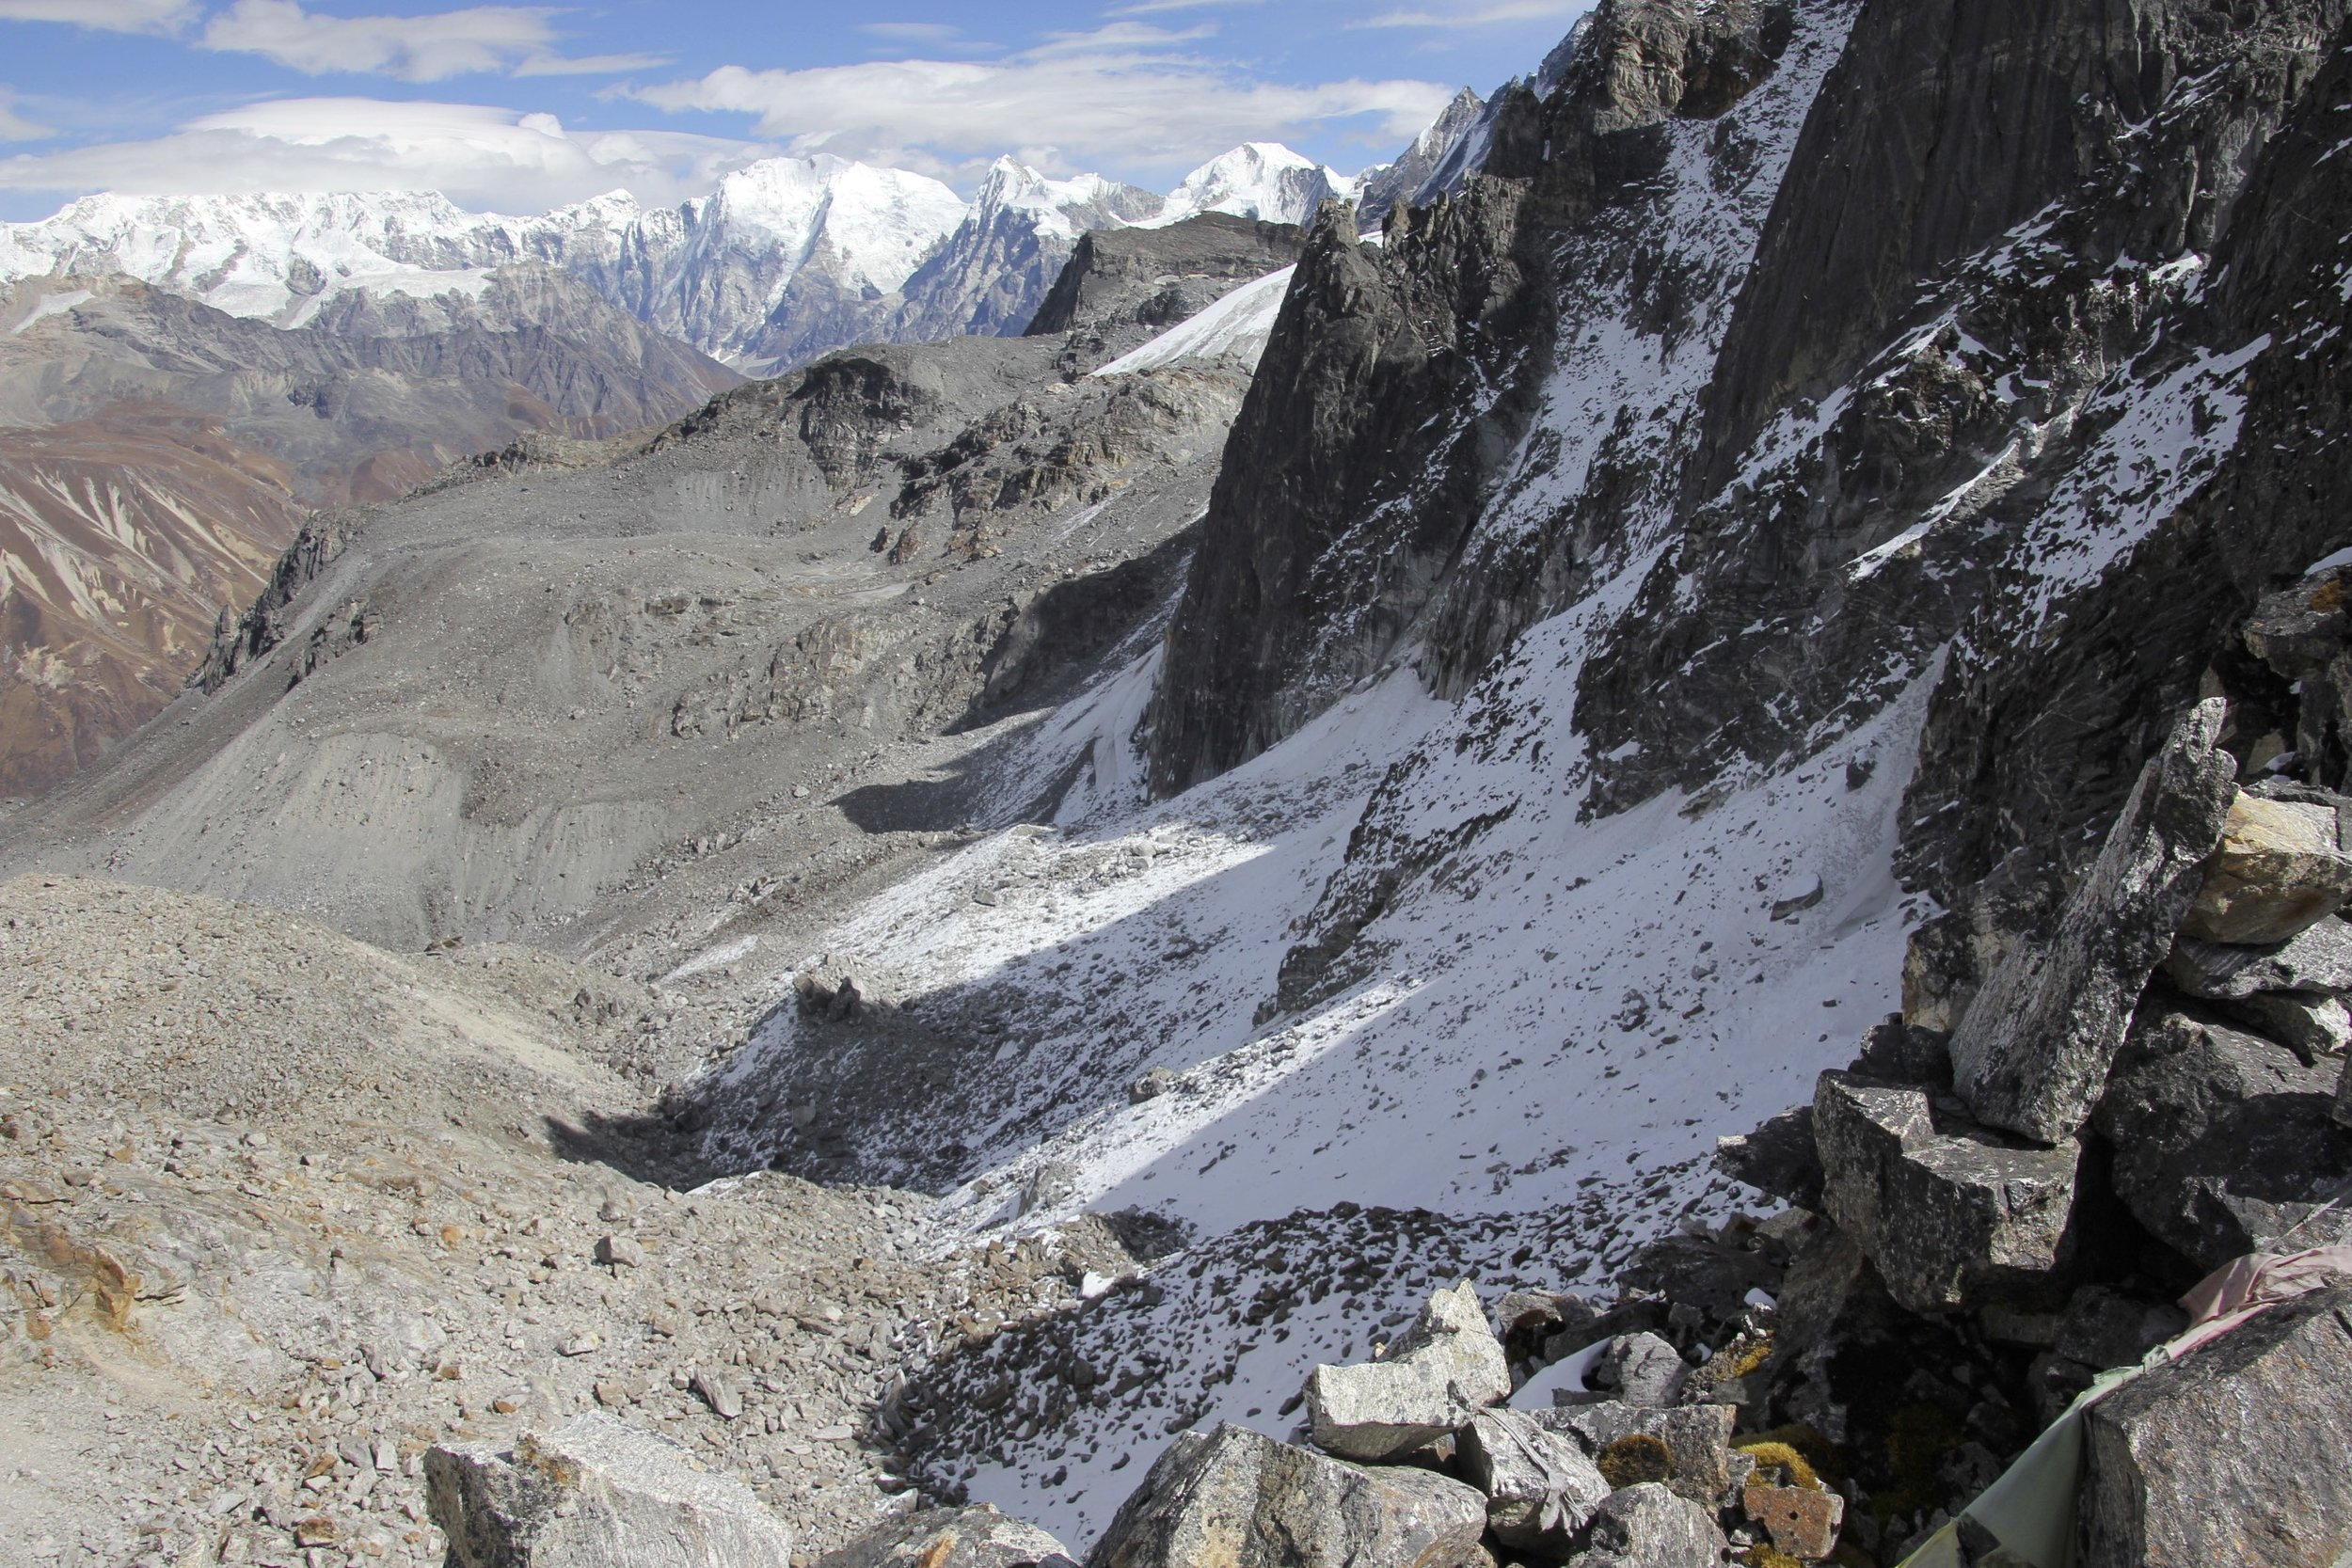 Looking down at the approach route to the Ganjala Pass from the now distant Langtang Valley.